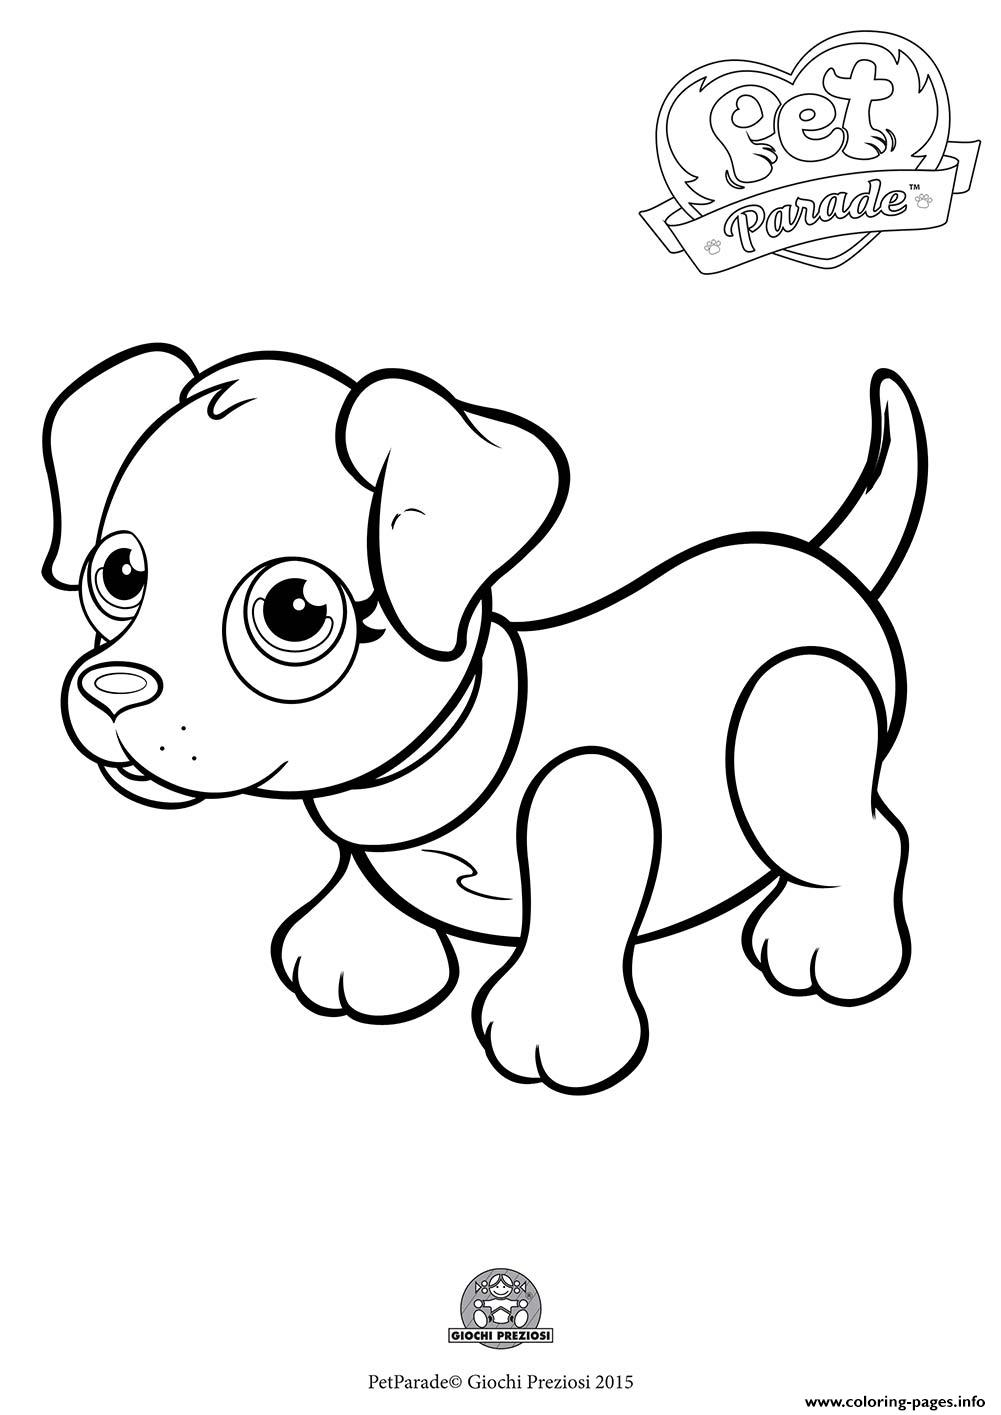 Parade coloring pages to print for adults - Pet Parade Cute Dog Labradog Coloring Pages Print Download 349 Prints